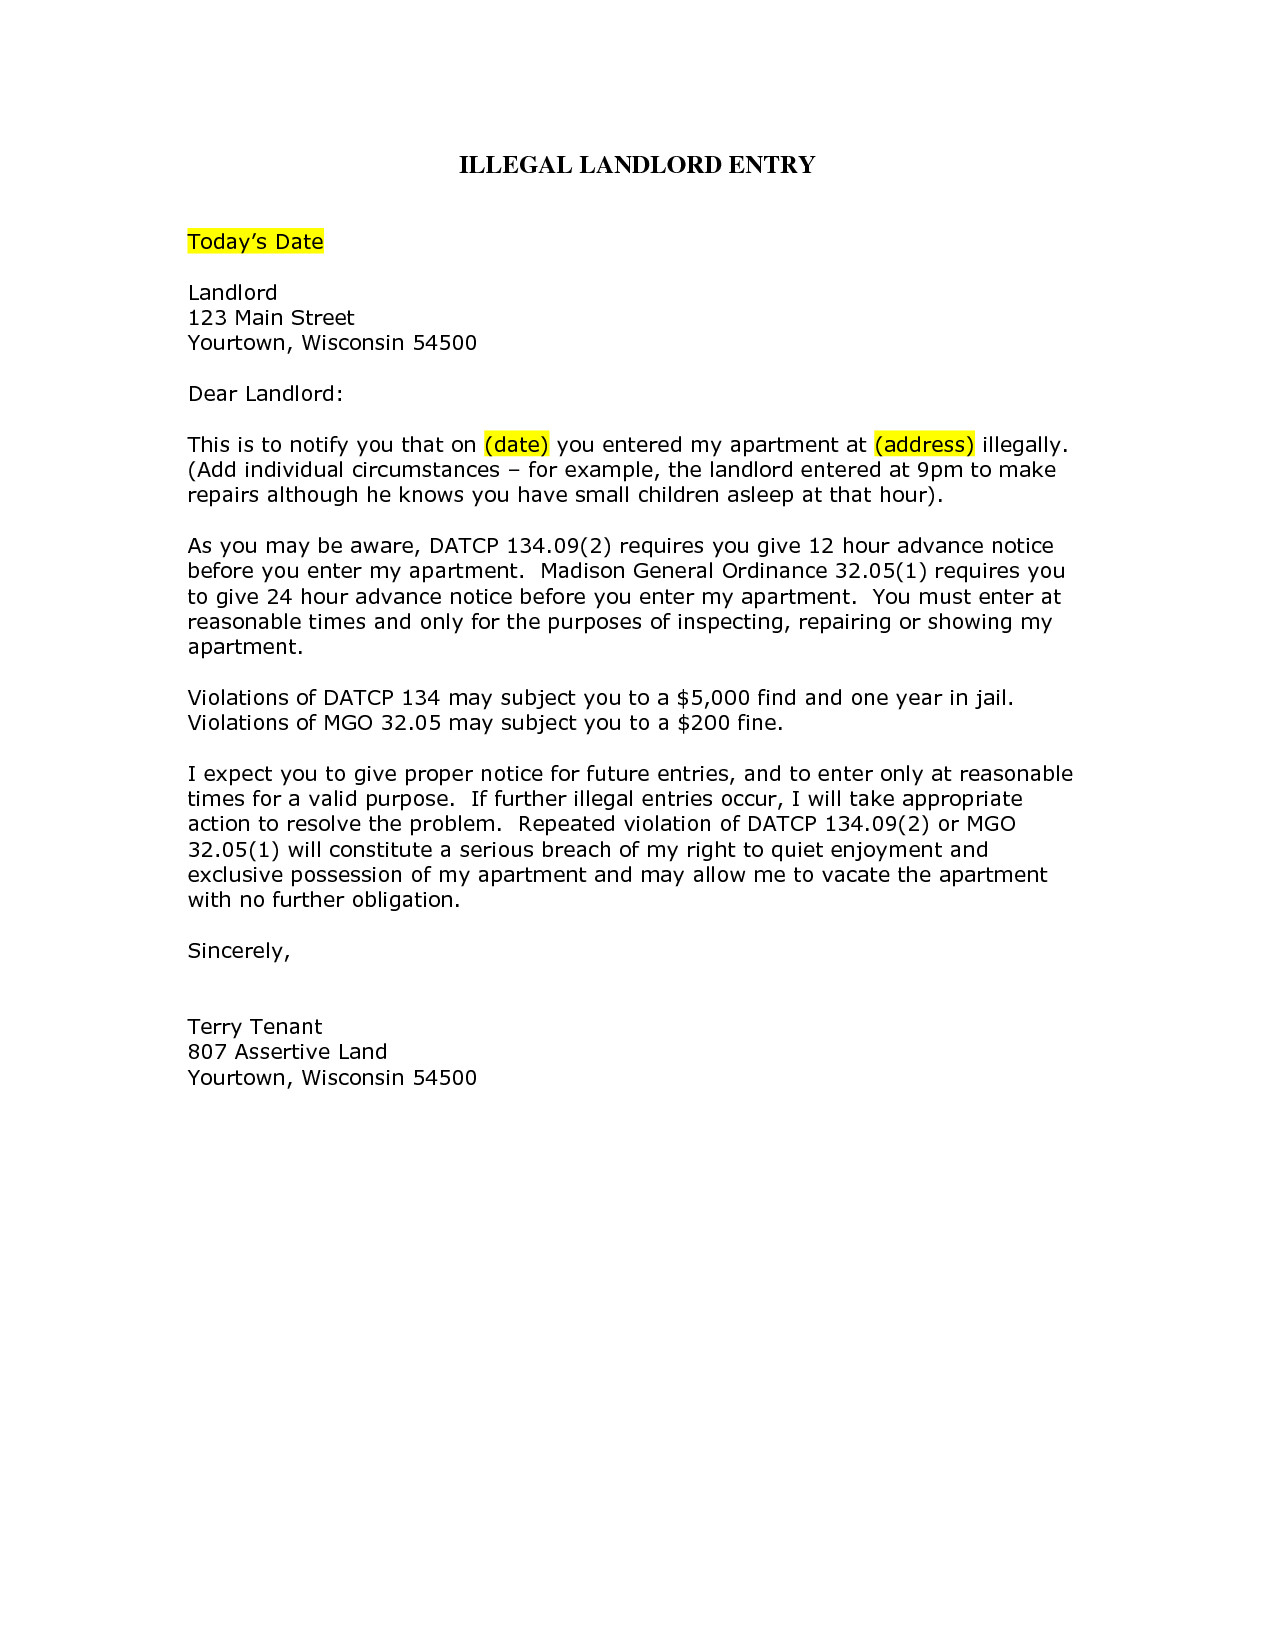 Security Deposit Demand Letter Template Florida - Return Security Deposit Letter Landlord Well Besides – Skyscrappersfo